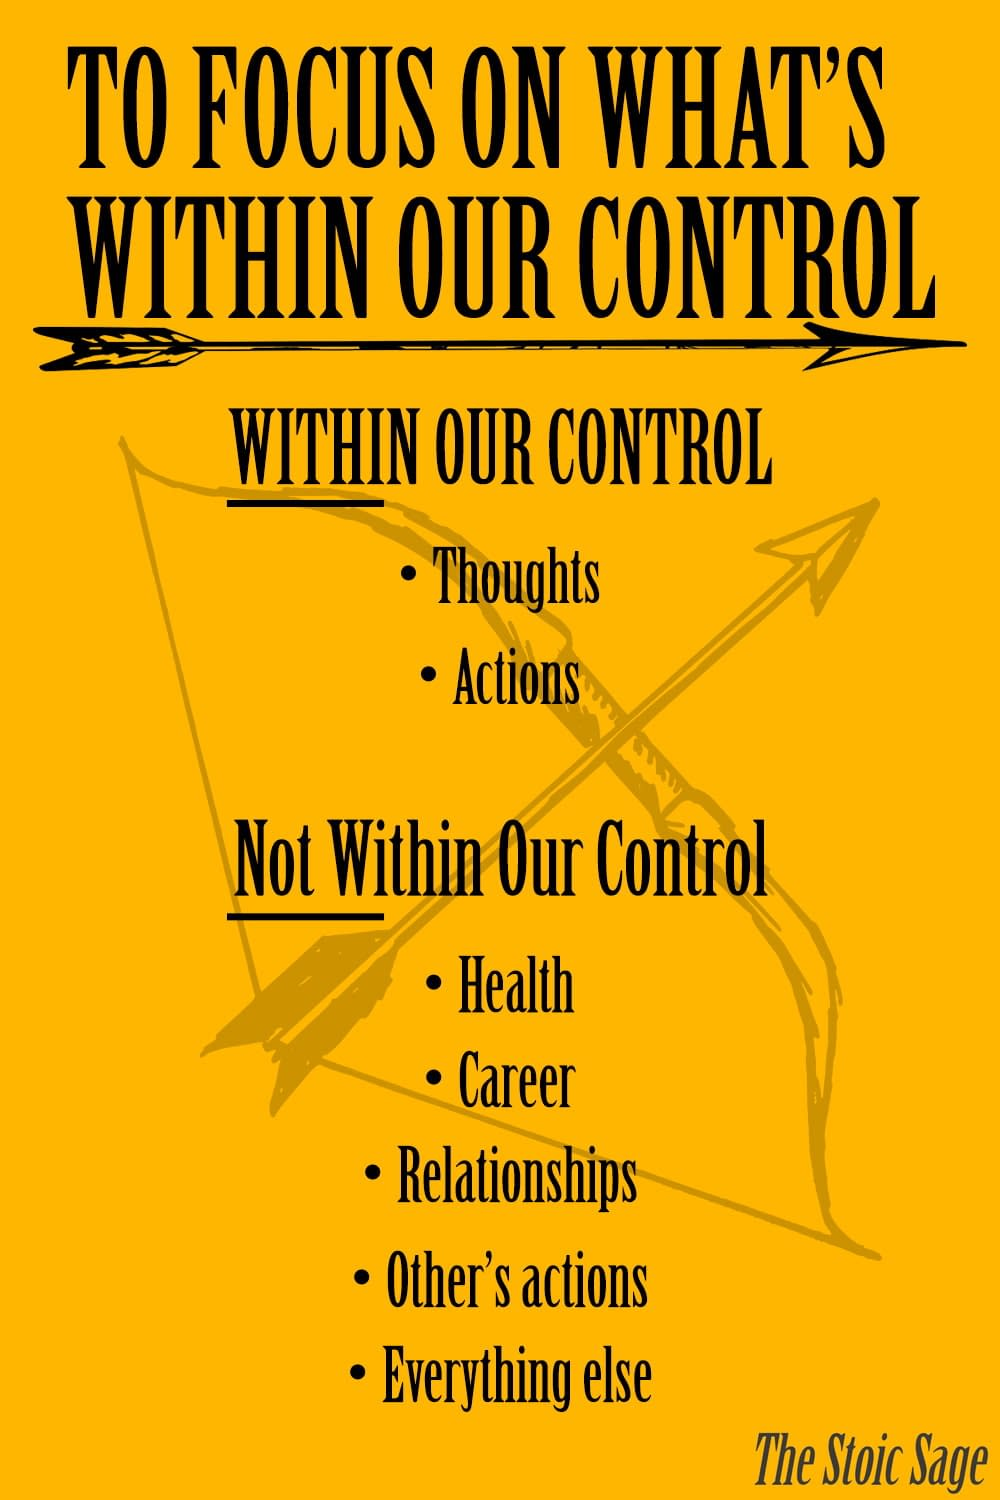 Stoic indifference, focus on what's within your control